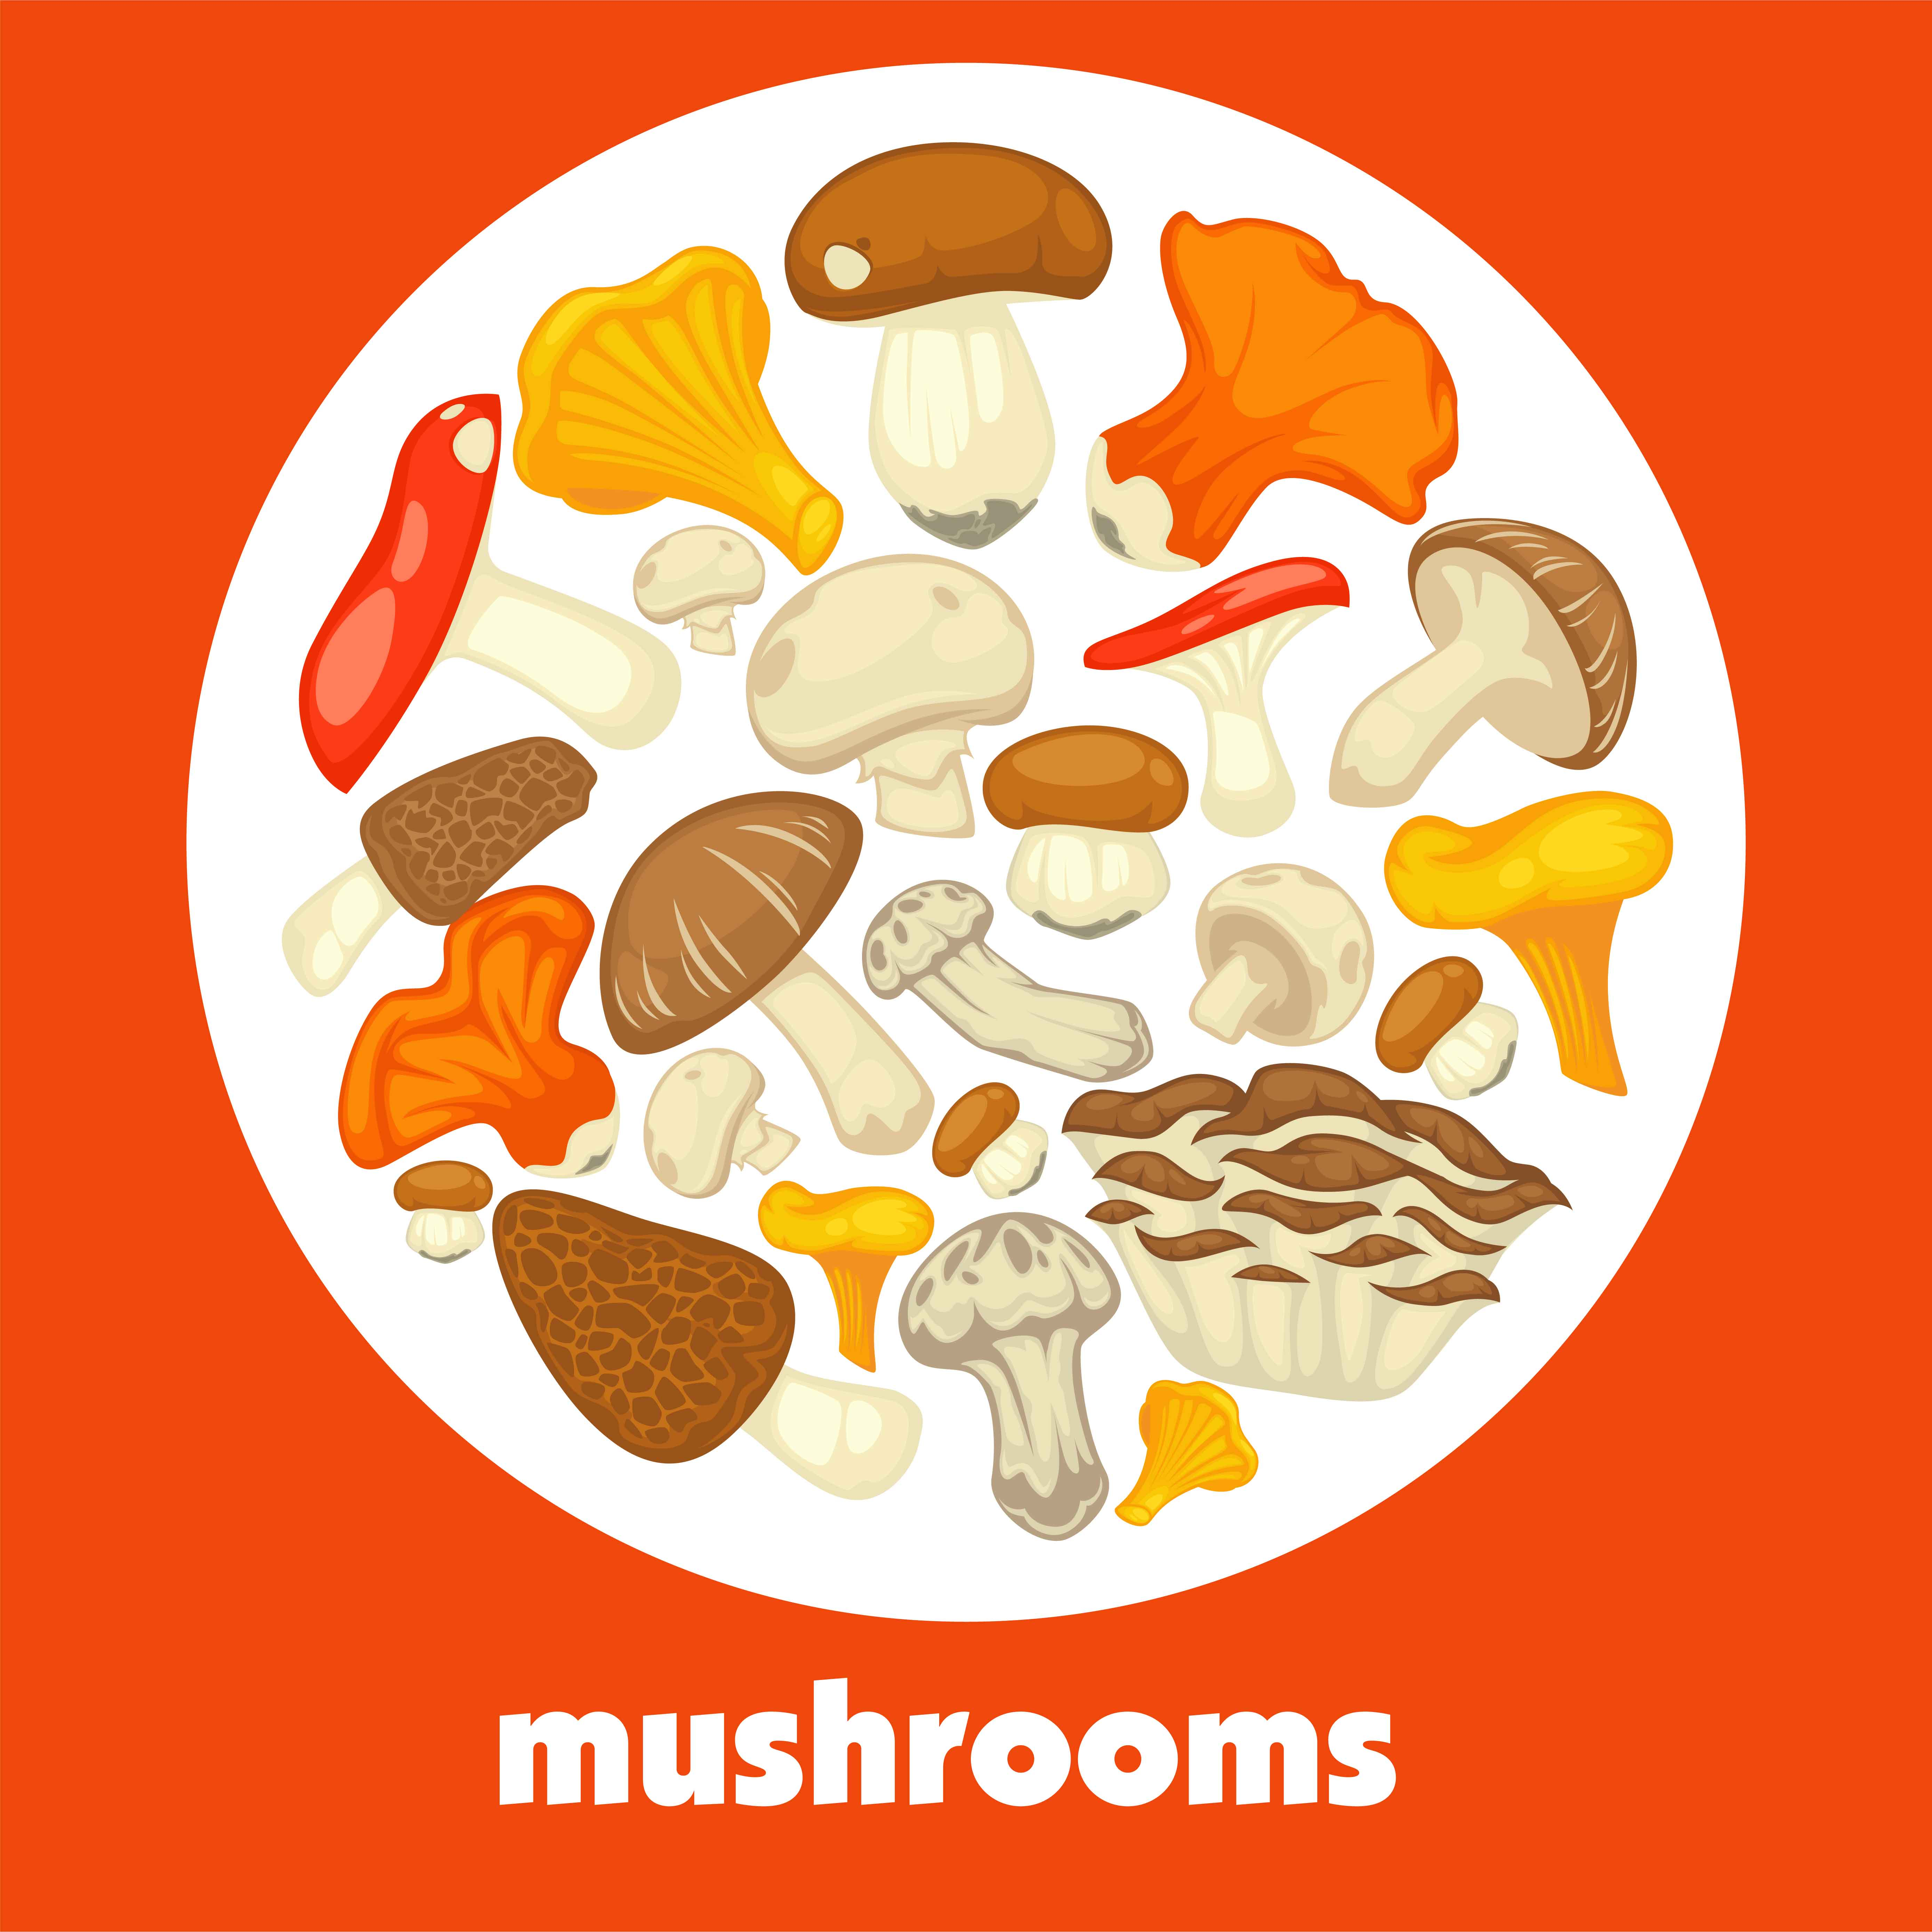 And are you eating mushrooms? Which are your favourite ones?